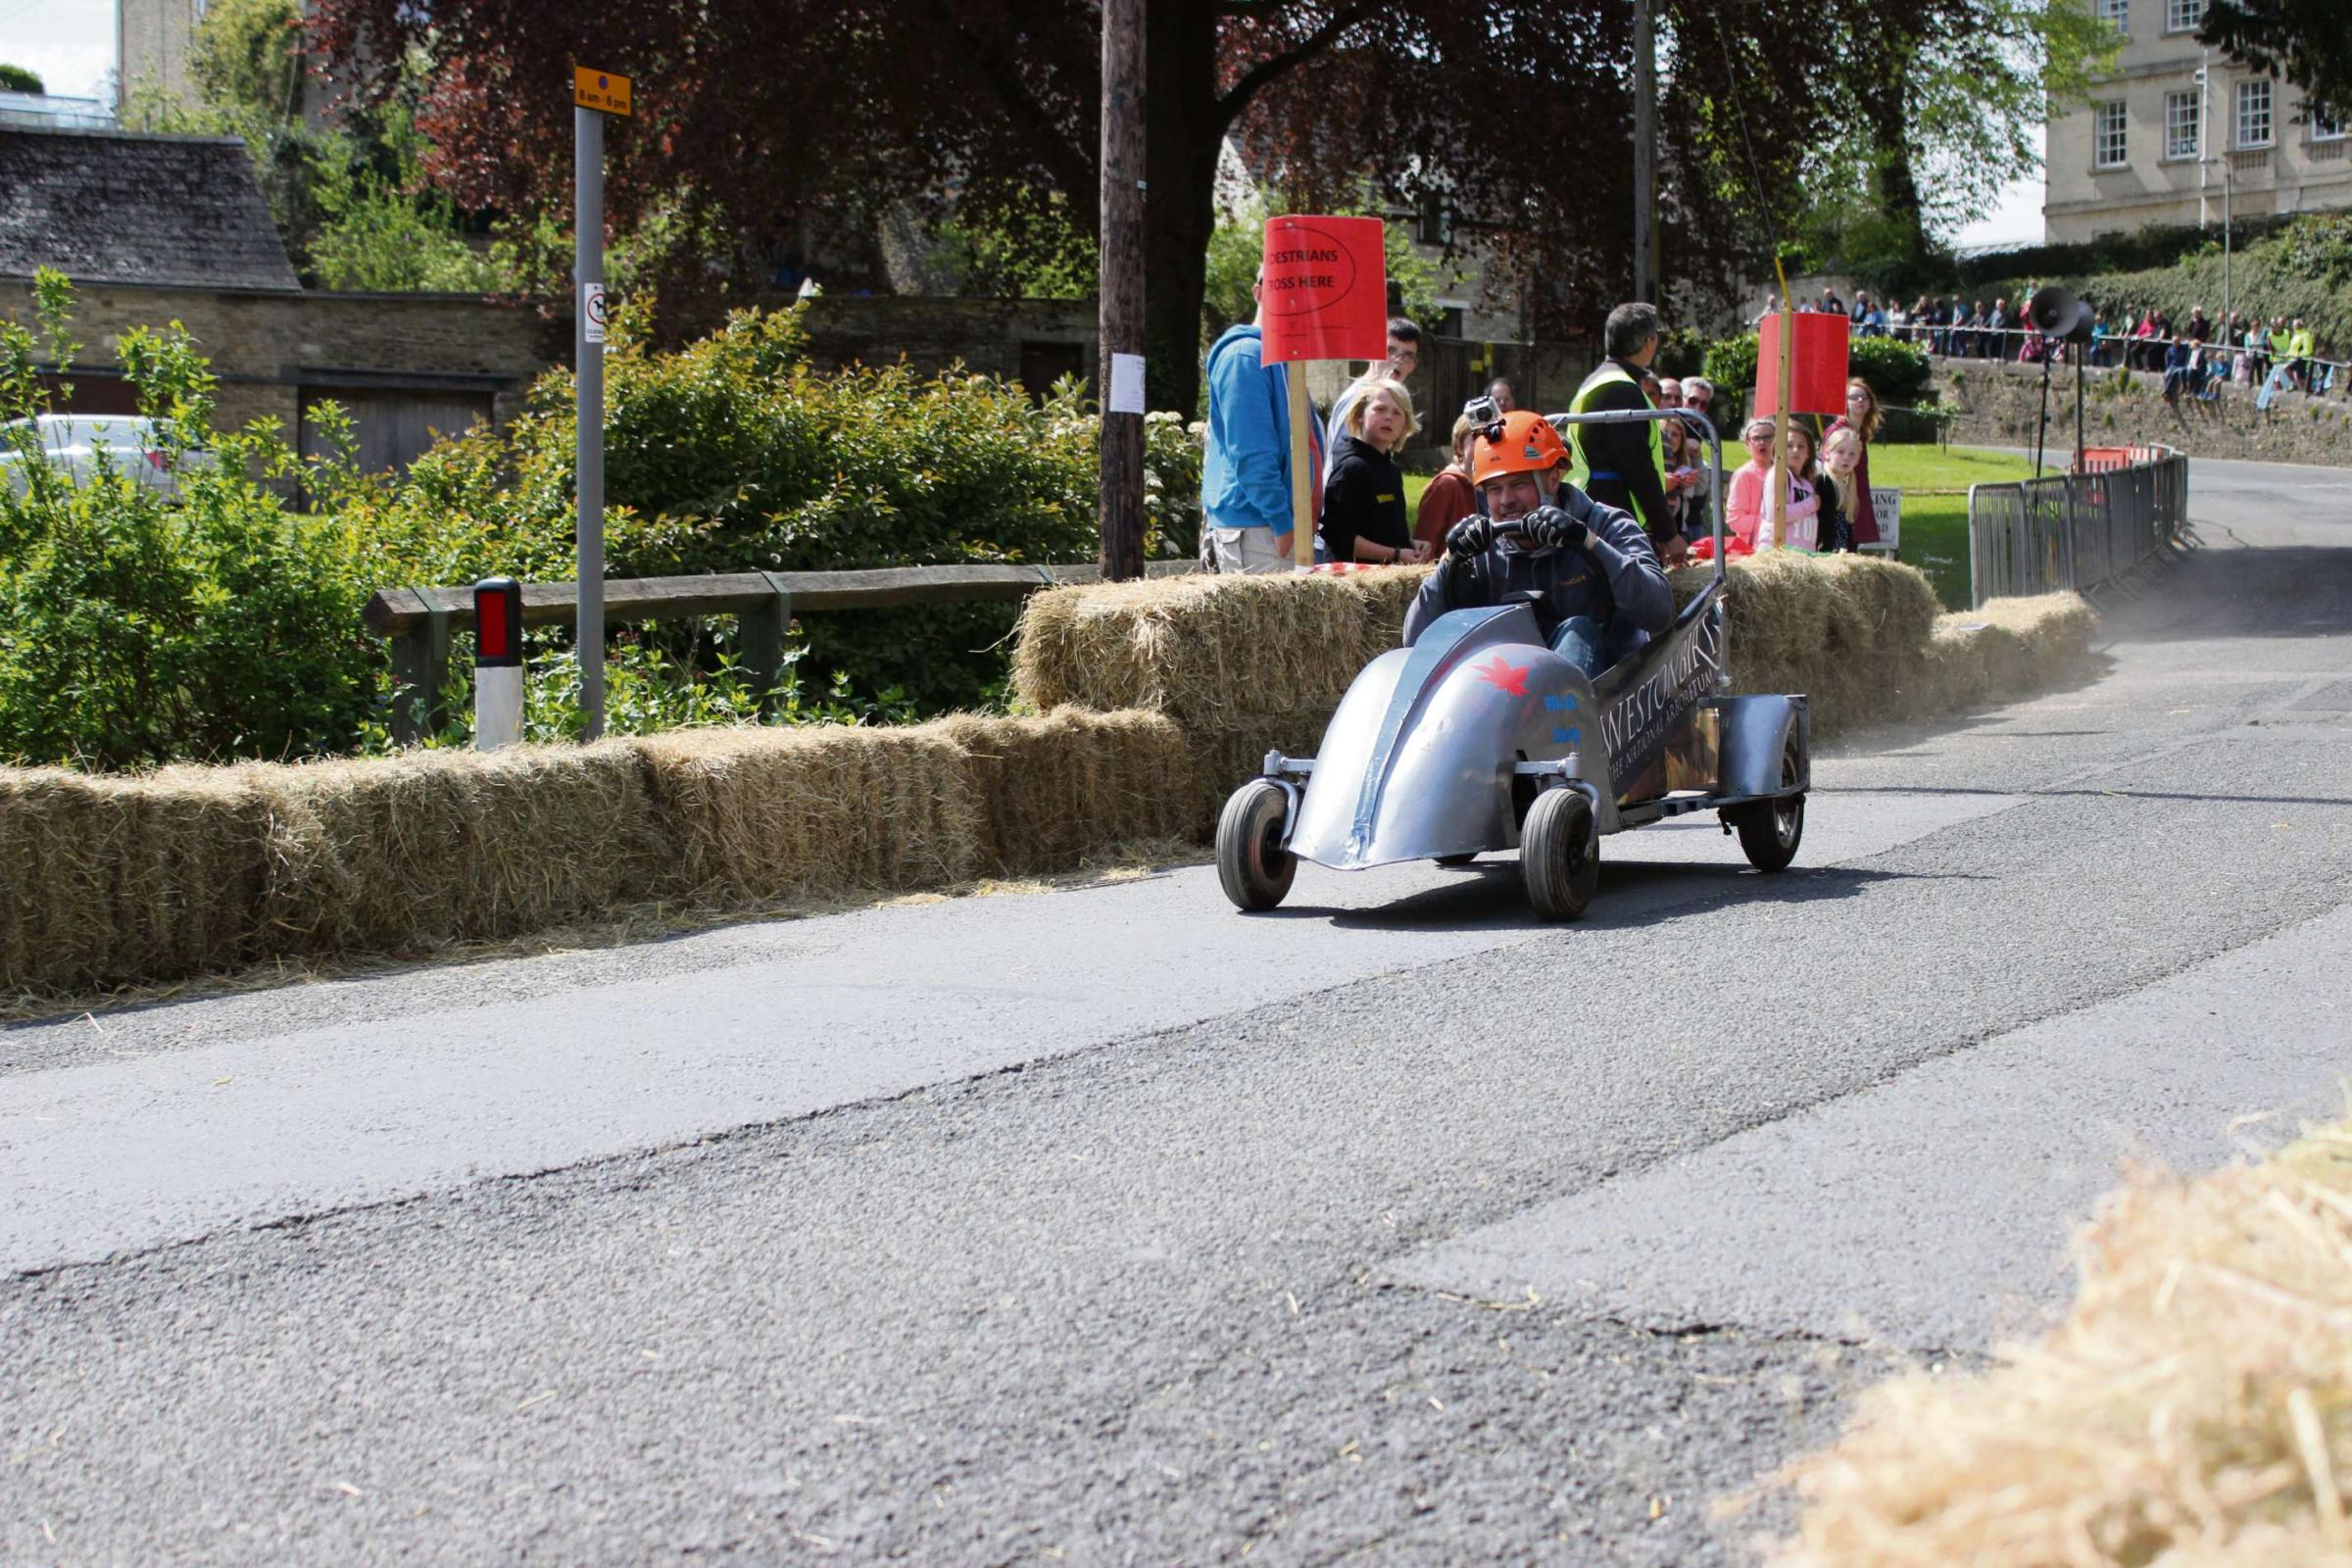 Soap-box derby takes to the streets of Tetbury